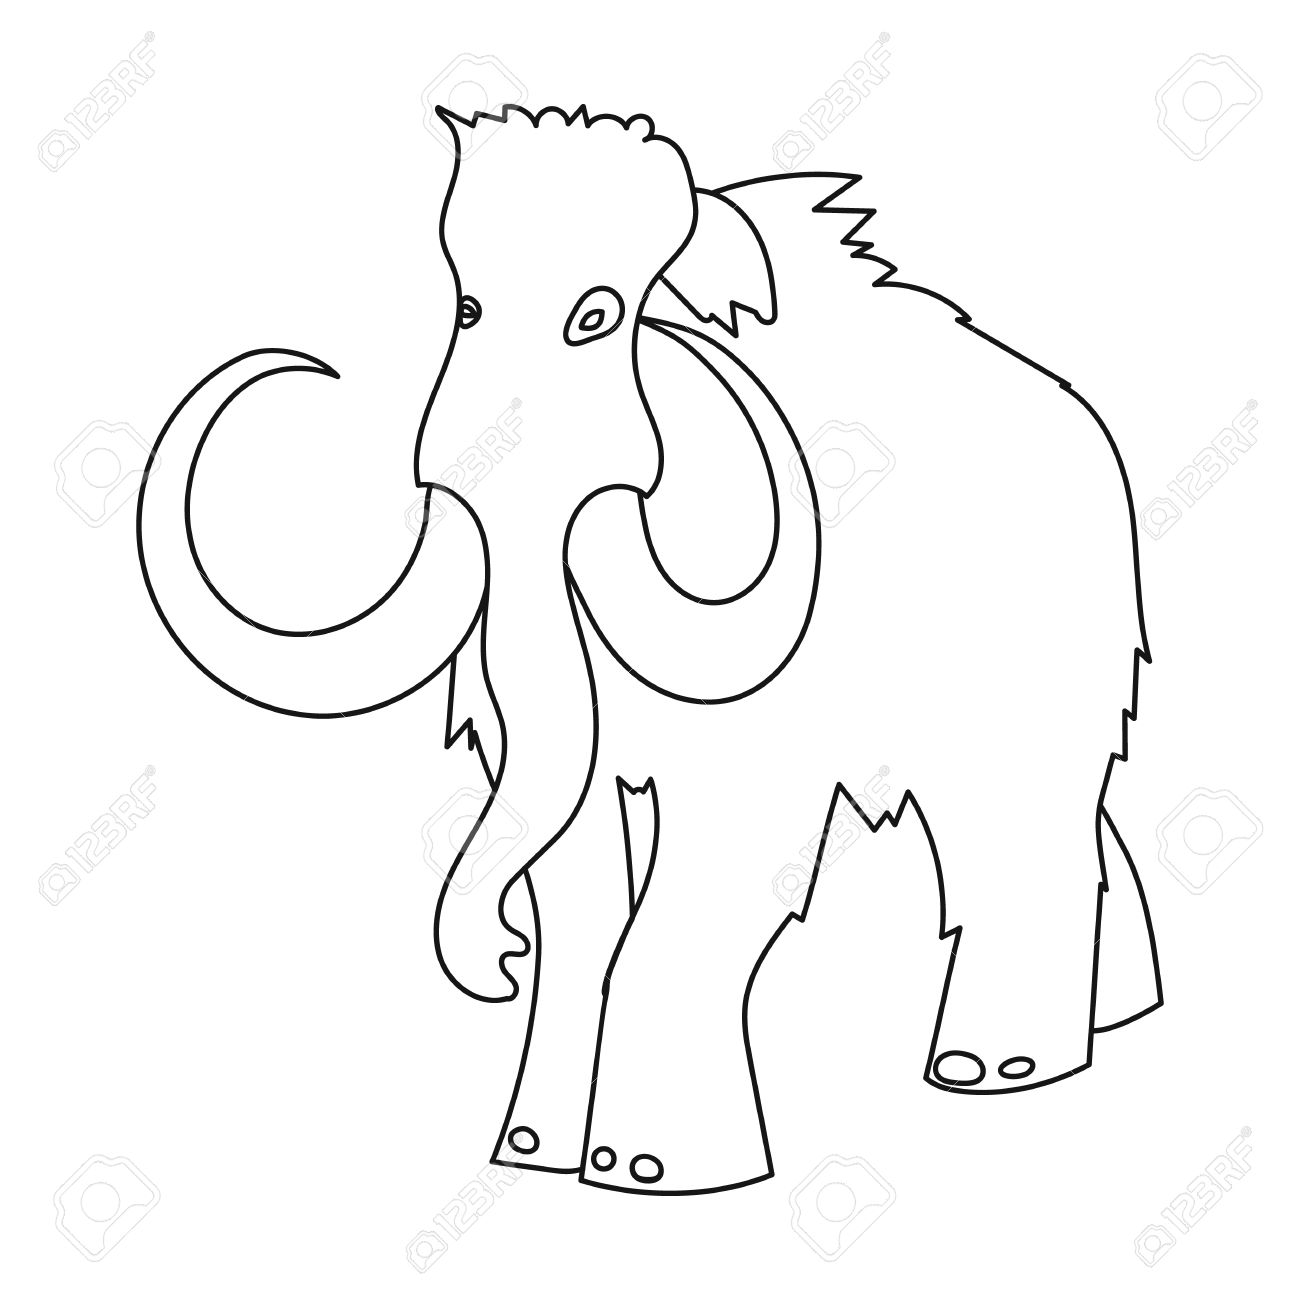 how to draw a woolly mammoth step by step woolly mammoth drawing at getdrawings free download how draw by mammoth woolly a to step step